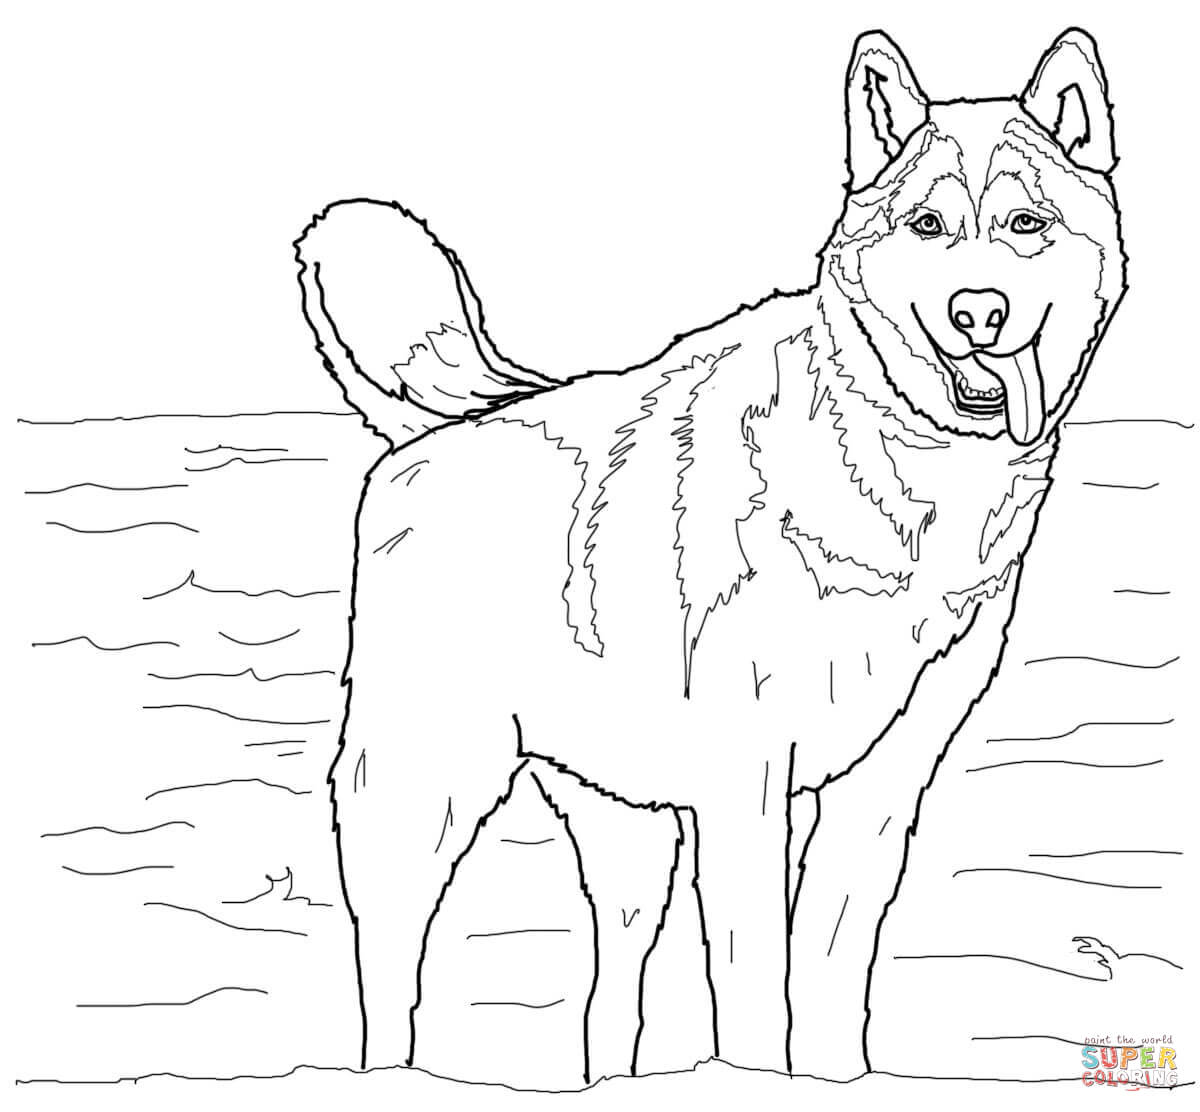 Husky coloring #11, Download drawings